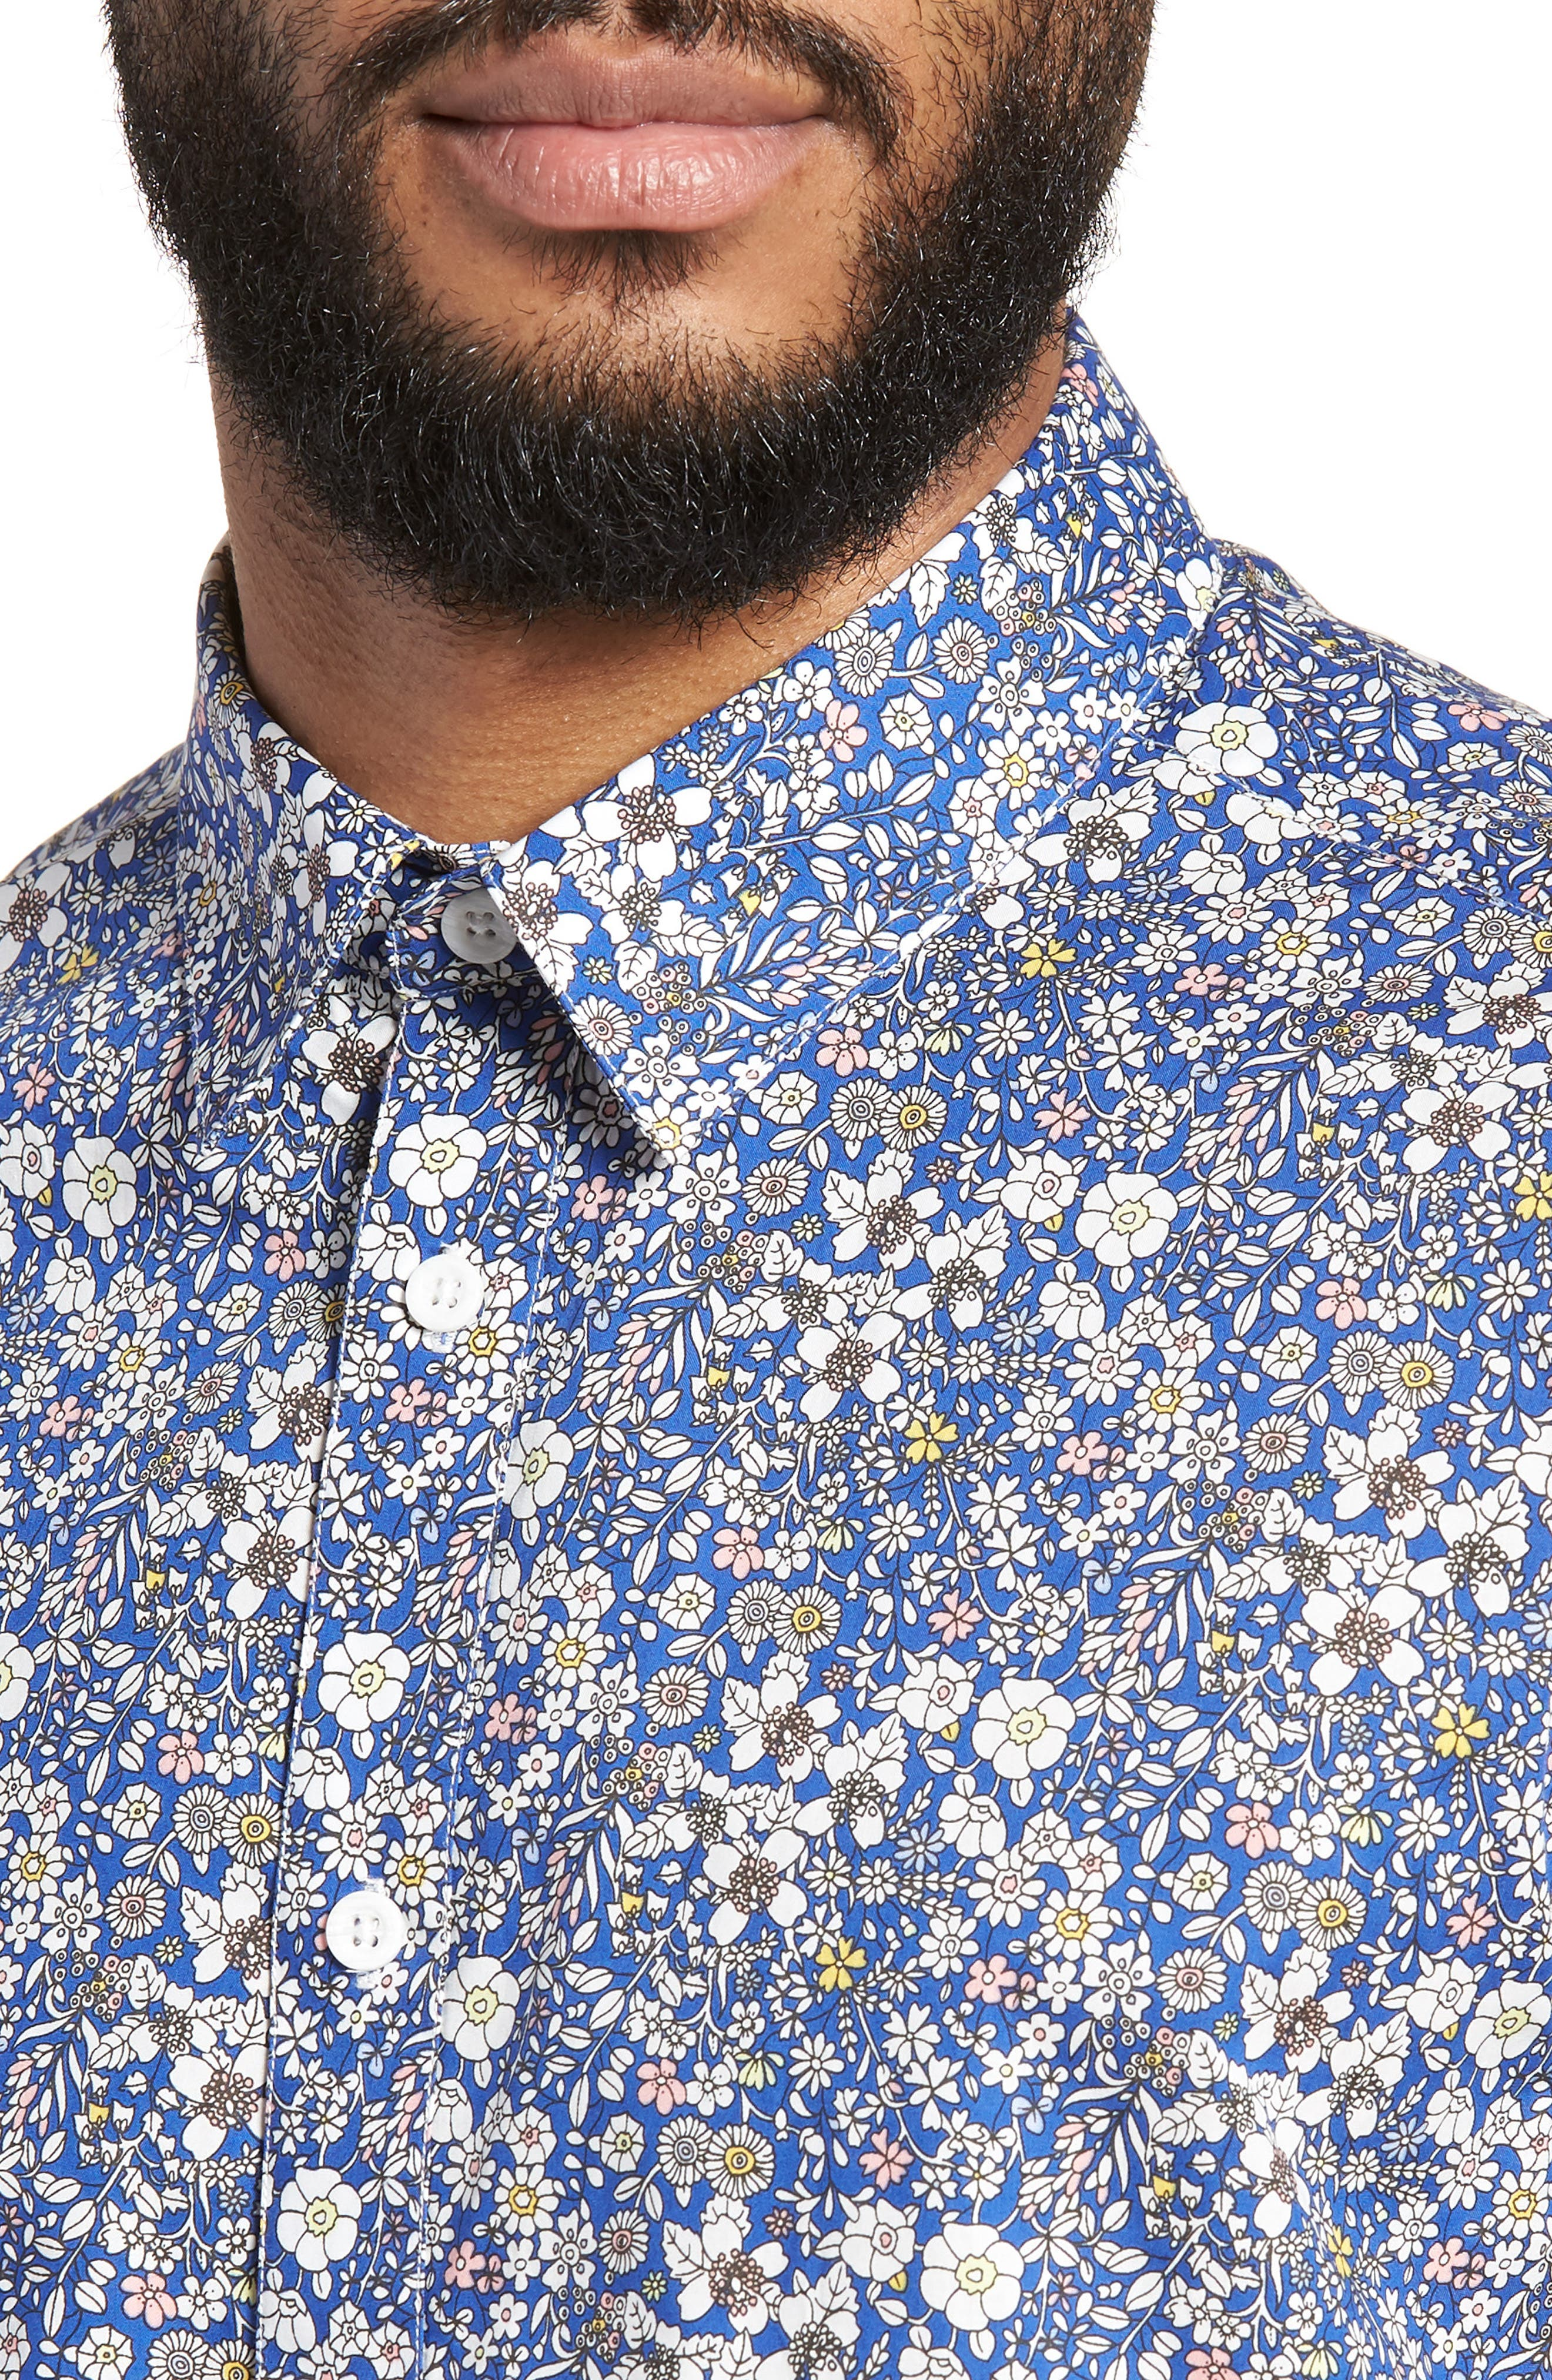 Trim Fit Print Woven Short Sleeve Shirt,                             Alternate thumbnail 4, color,                             400